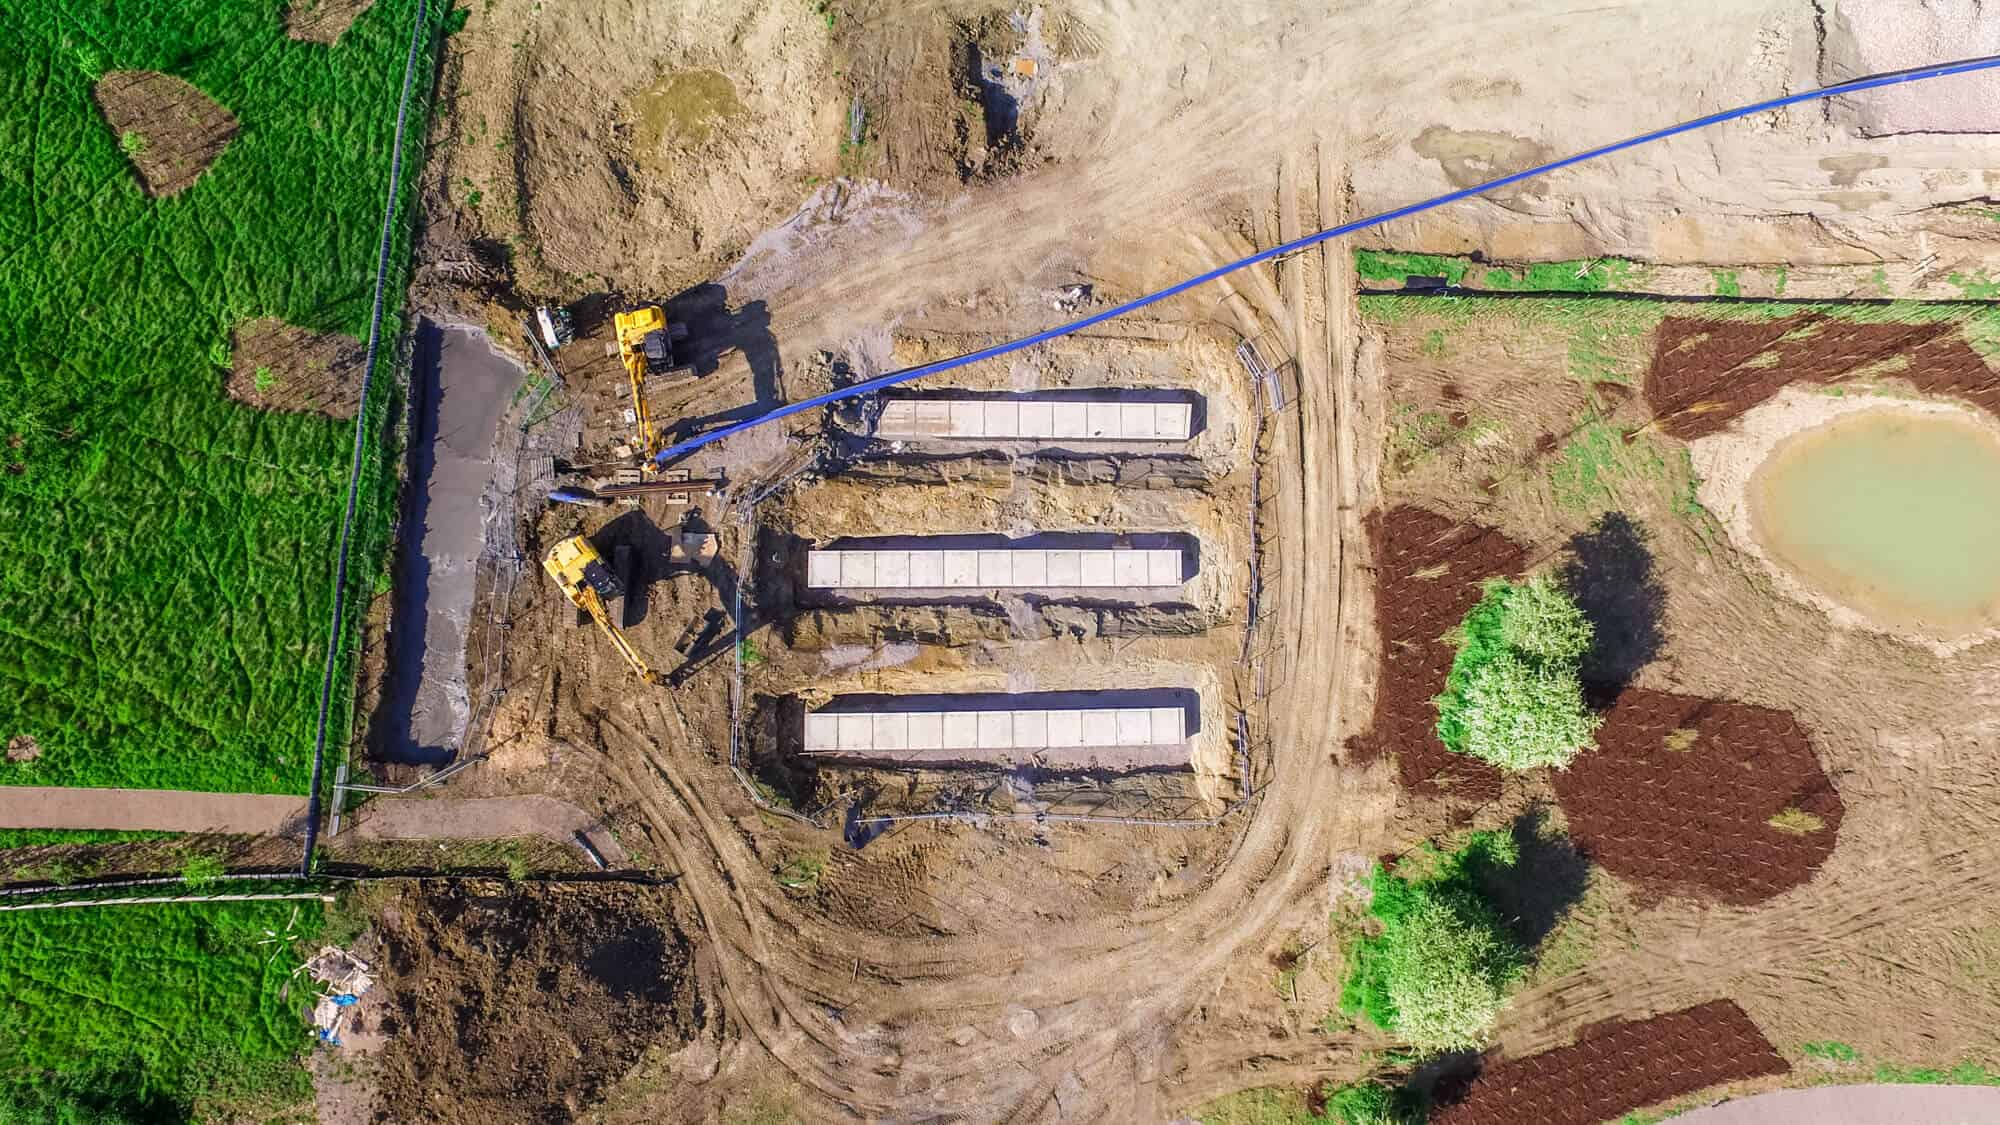 drone surveys of construction site